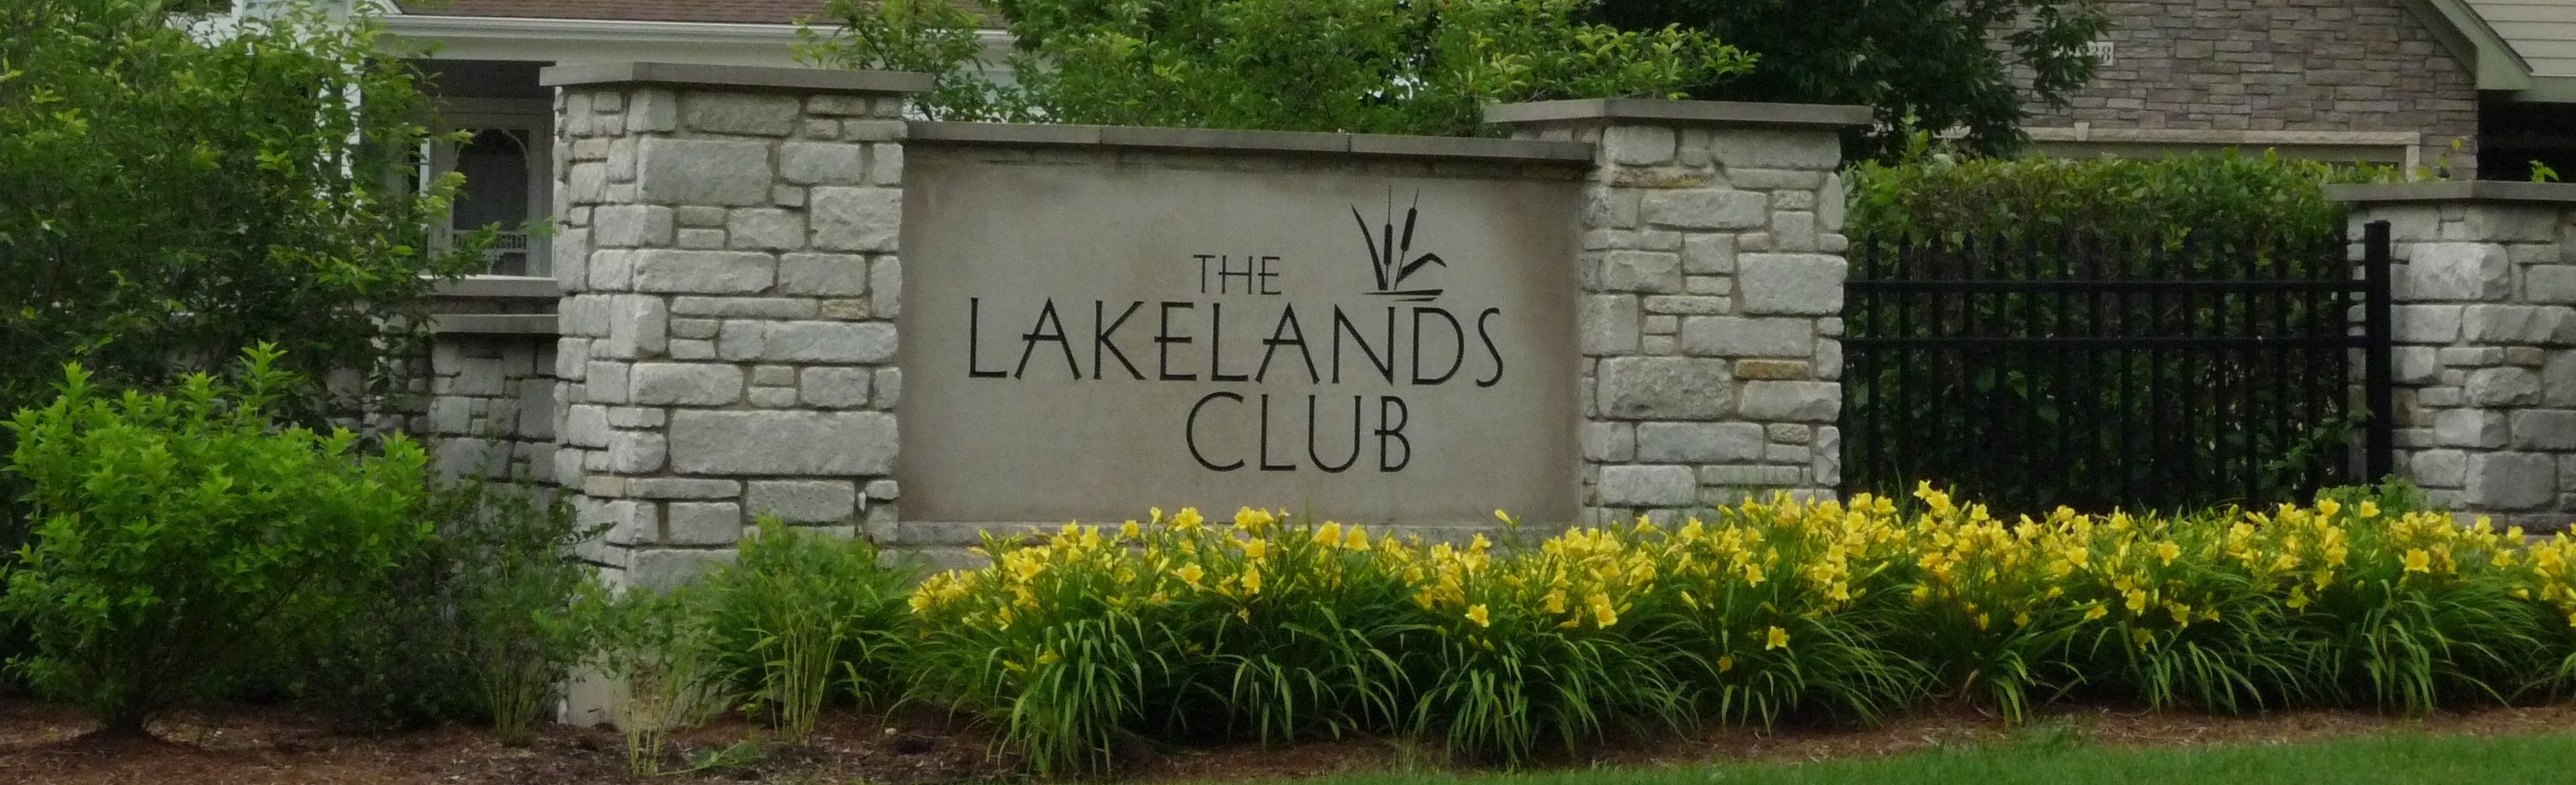 The Lakelands Club  cover